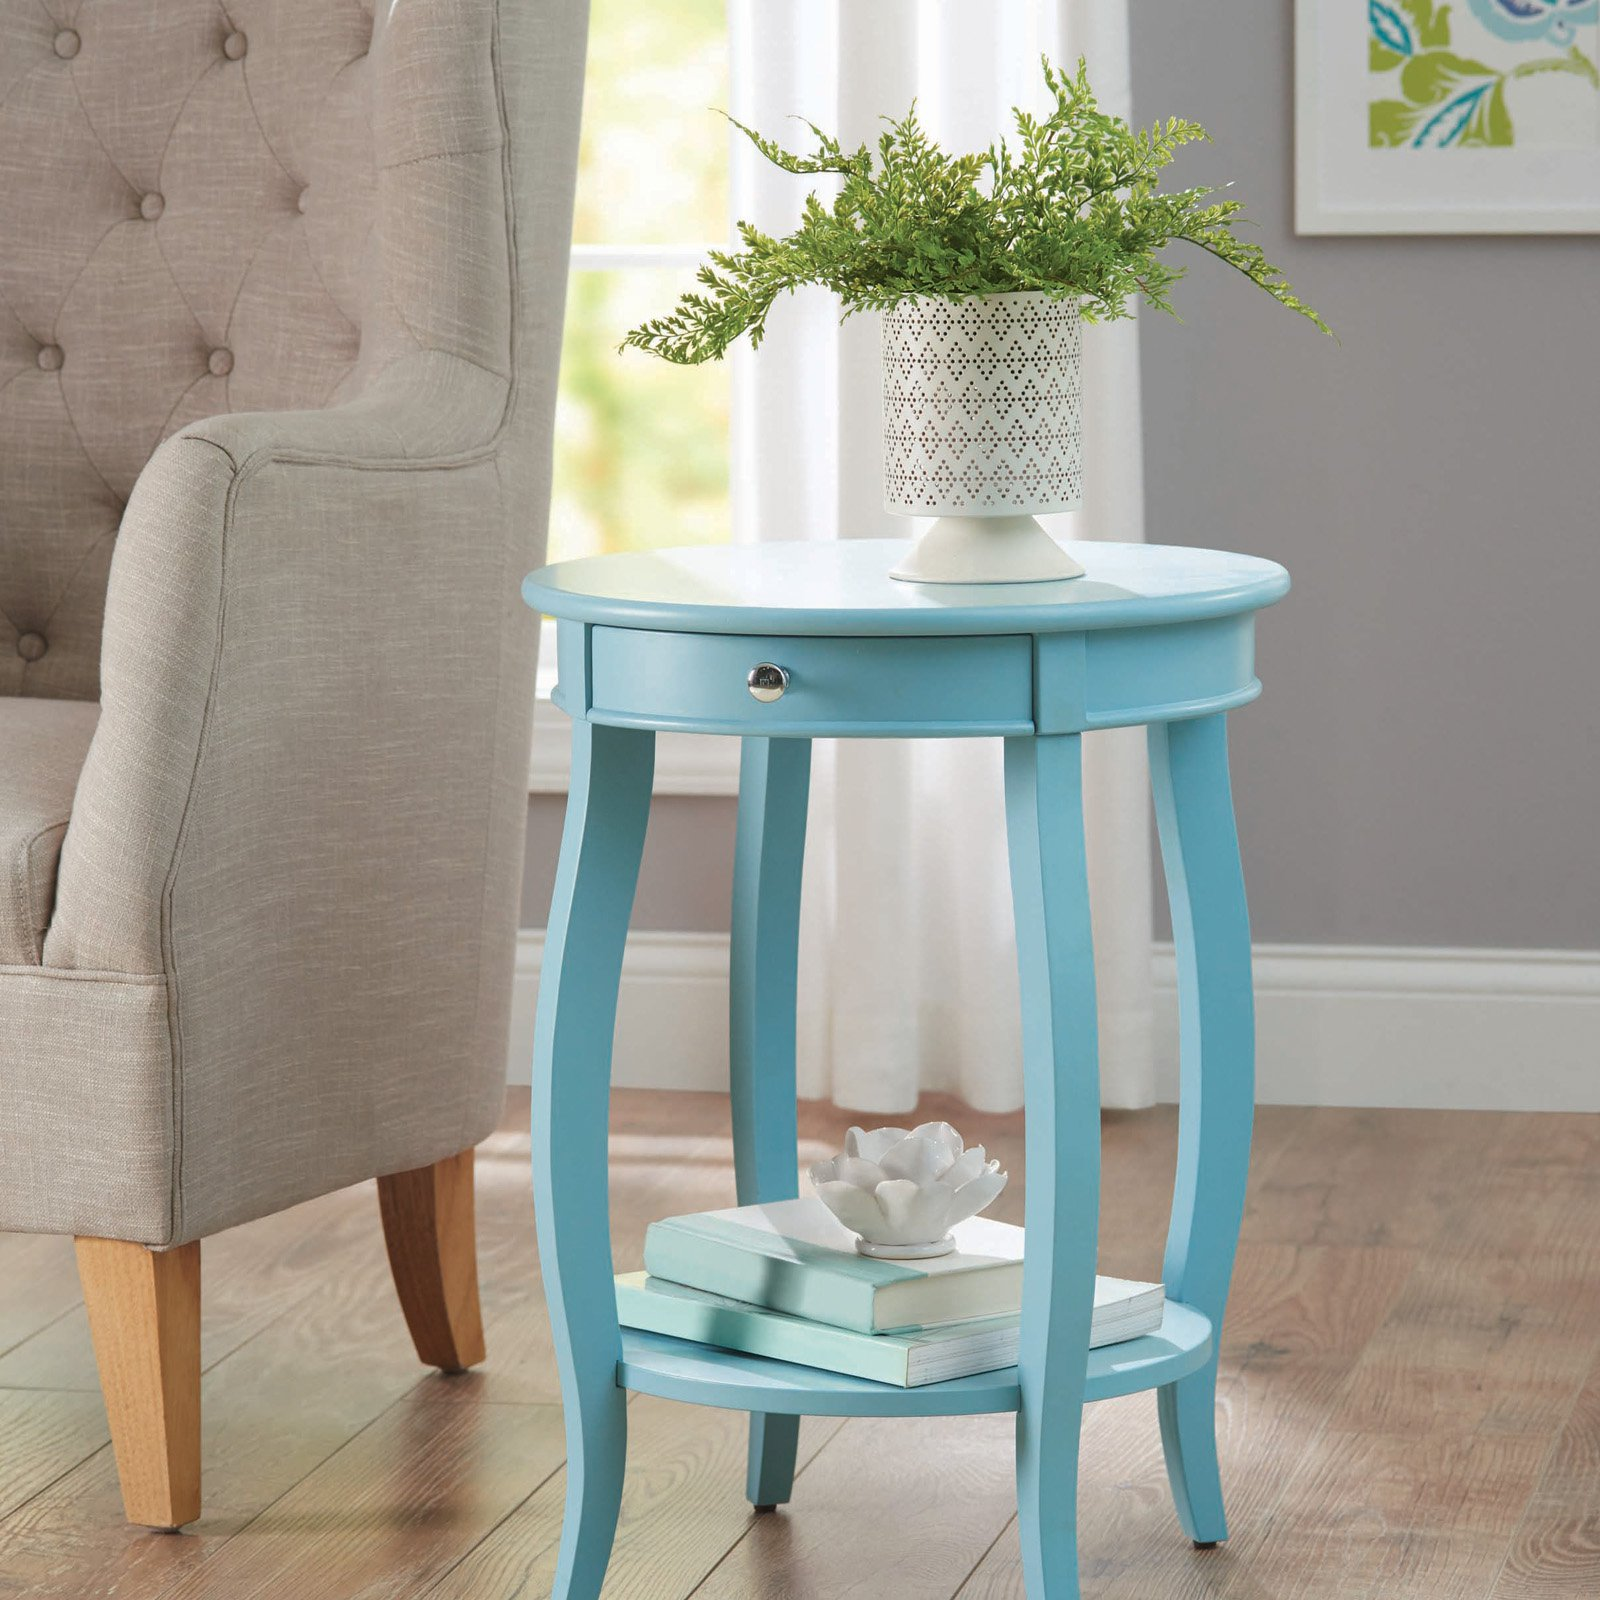 better homes gardens round accent table with drawer multiple aqua blue colors chairs for living room lamps tiffany butterfly lamp original floor threshold transitions bright